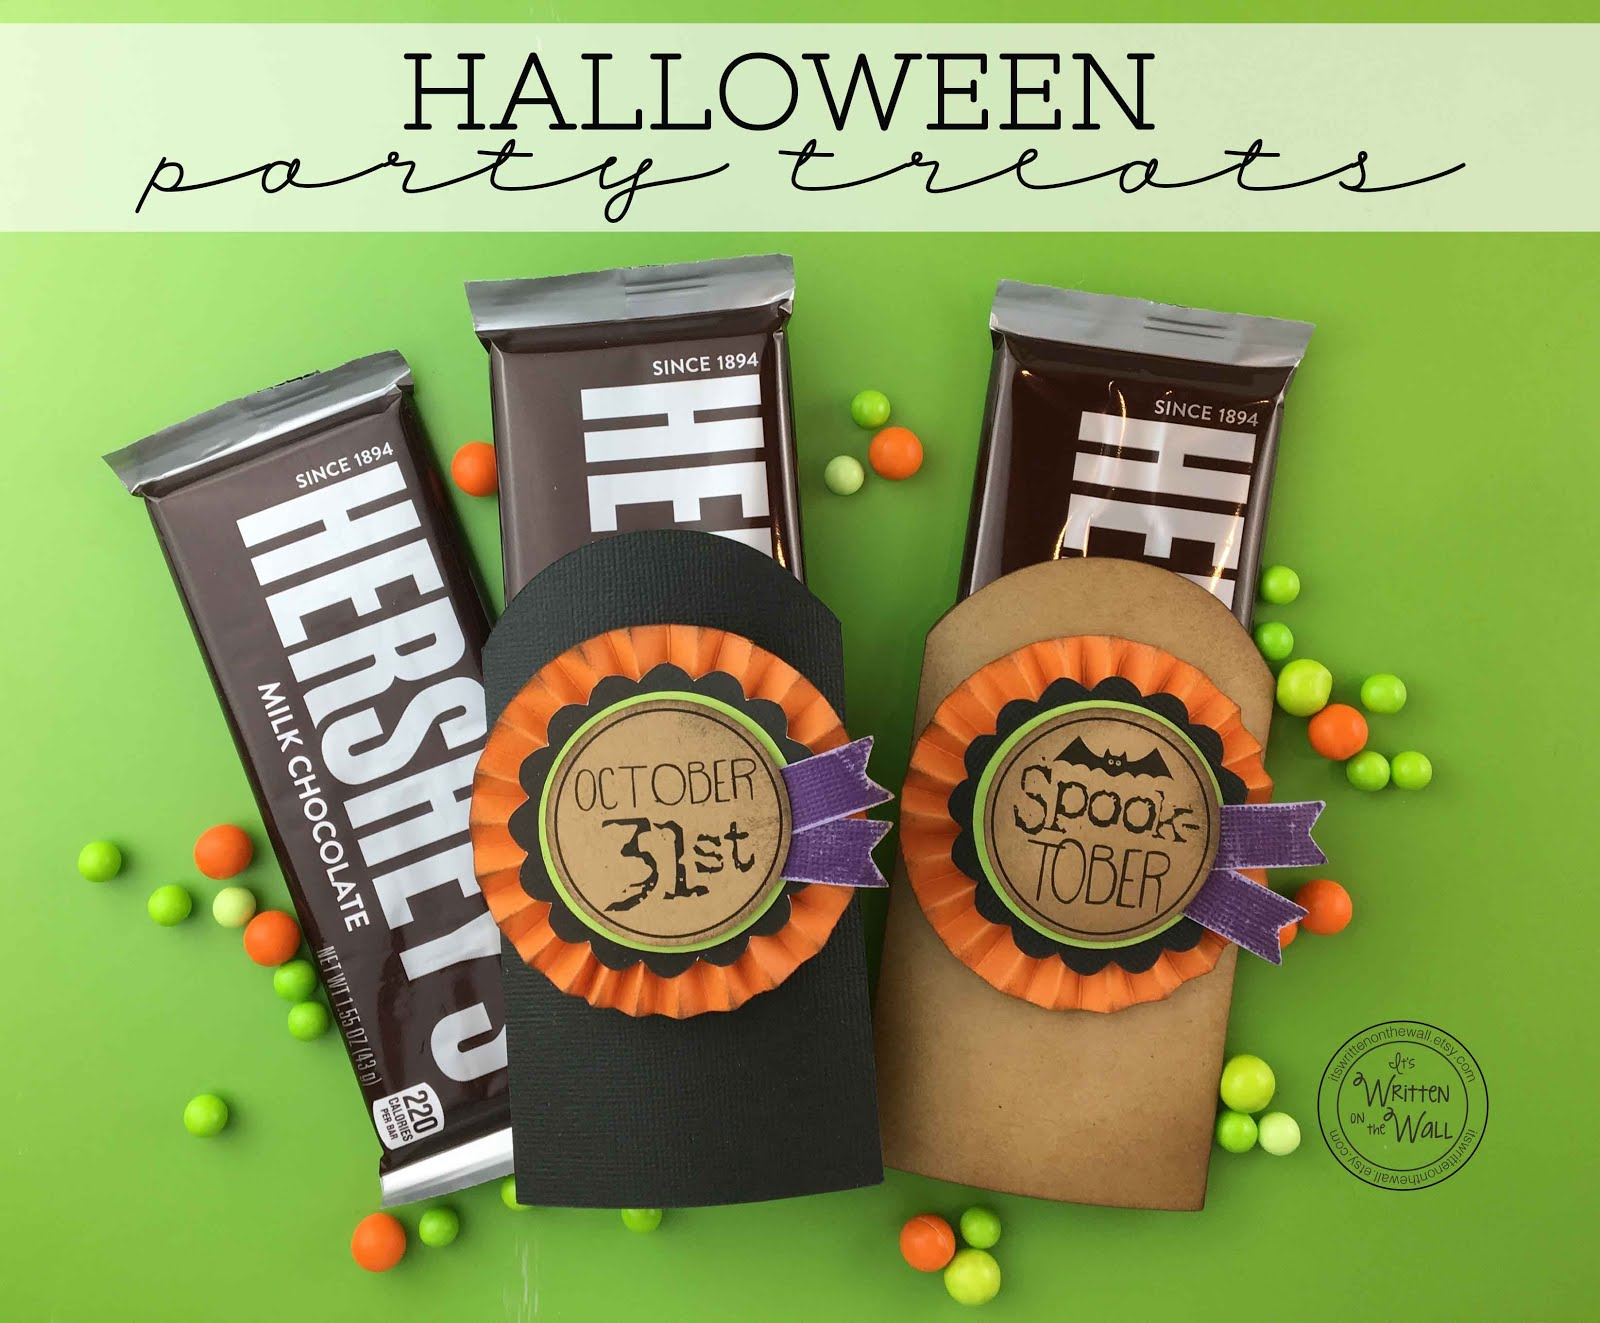 Halloween Spook-Tober Candy Bar Wraps